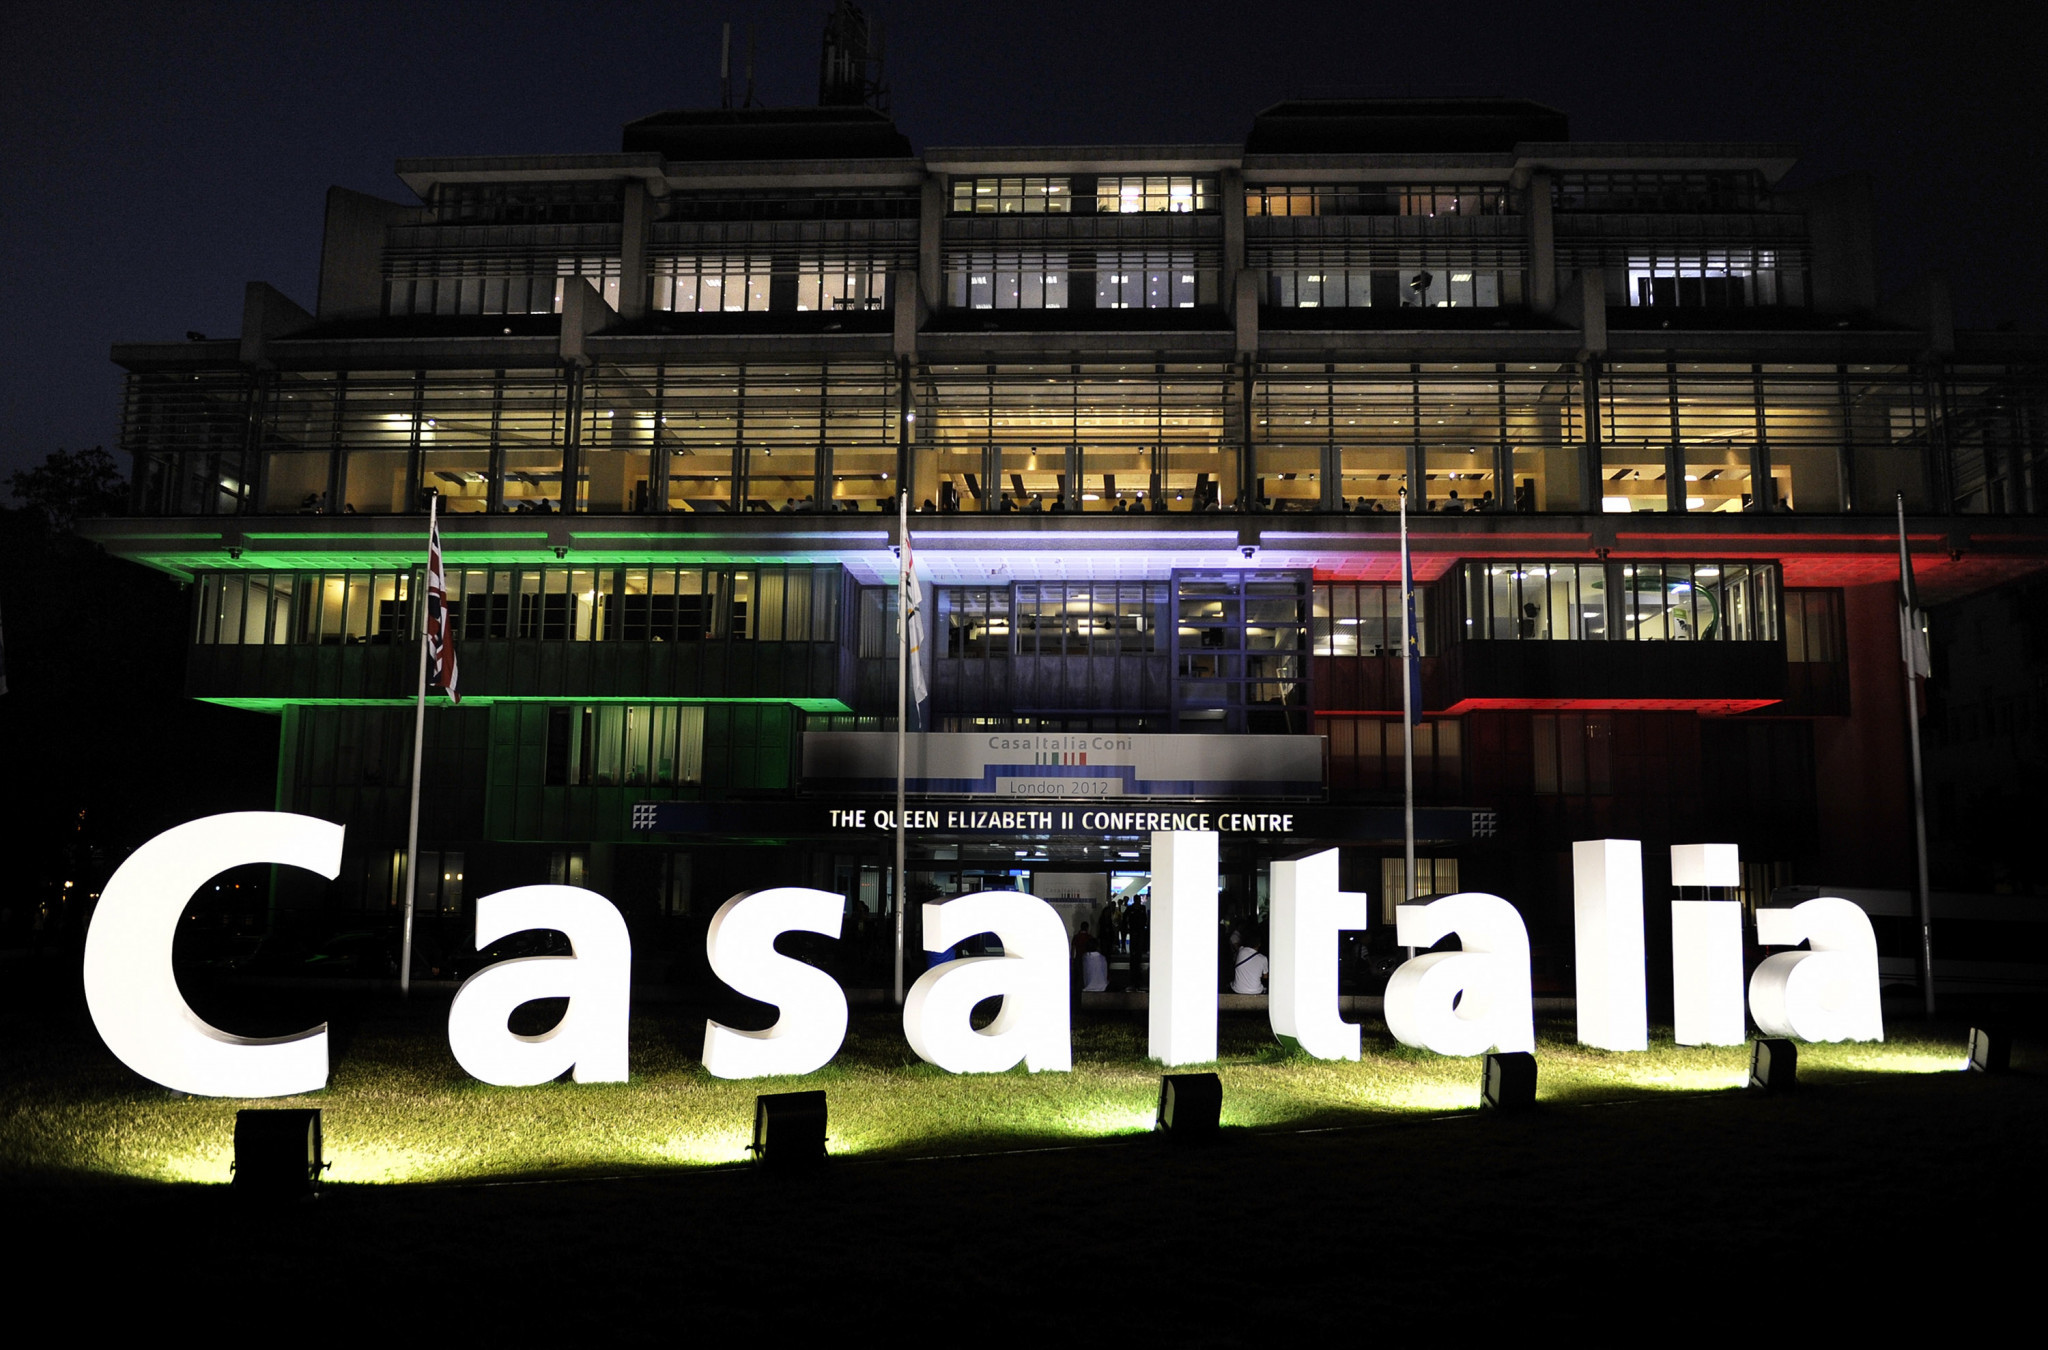 Casa Italia was based at the Queen Elizabeth Conference Centre during London 2012 ©Getty Images